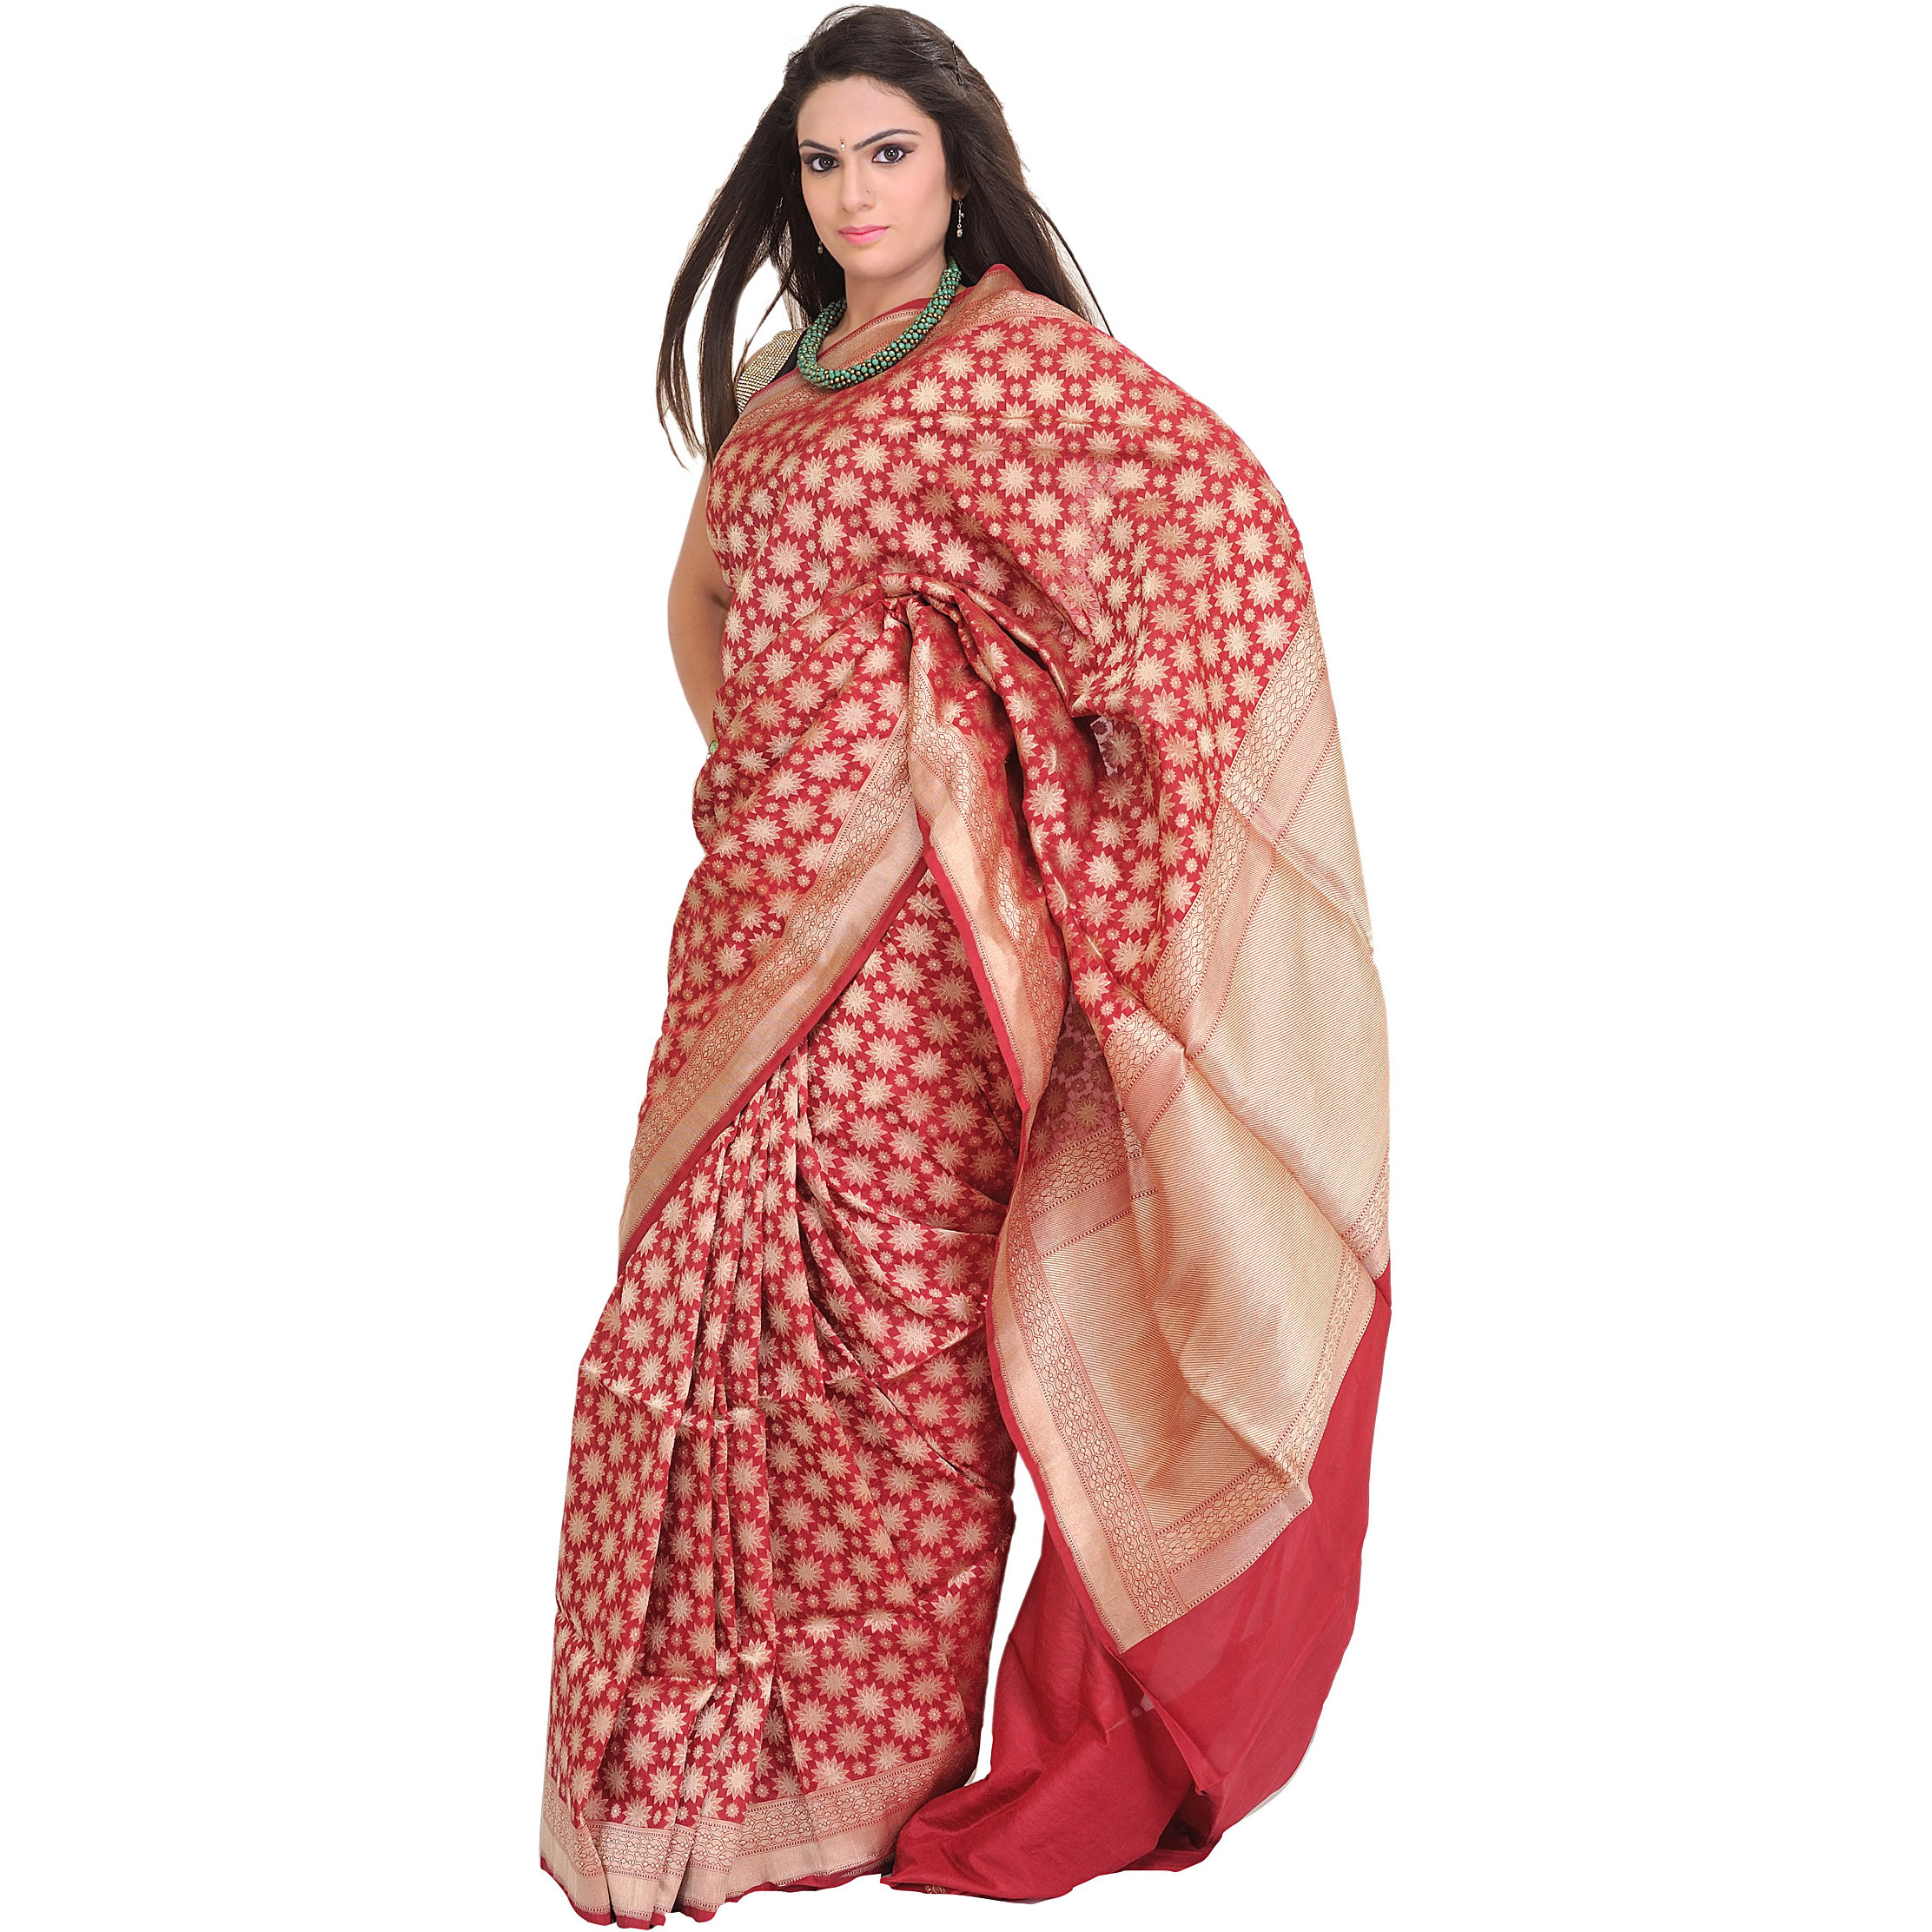 Earth-Red Sari from Banaras with Zari-Woven Stars and Brocade Aanchal